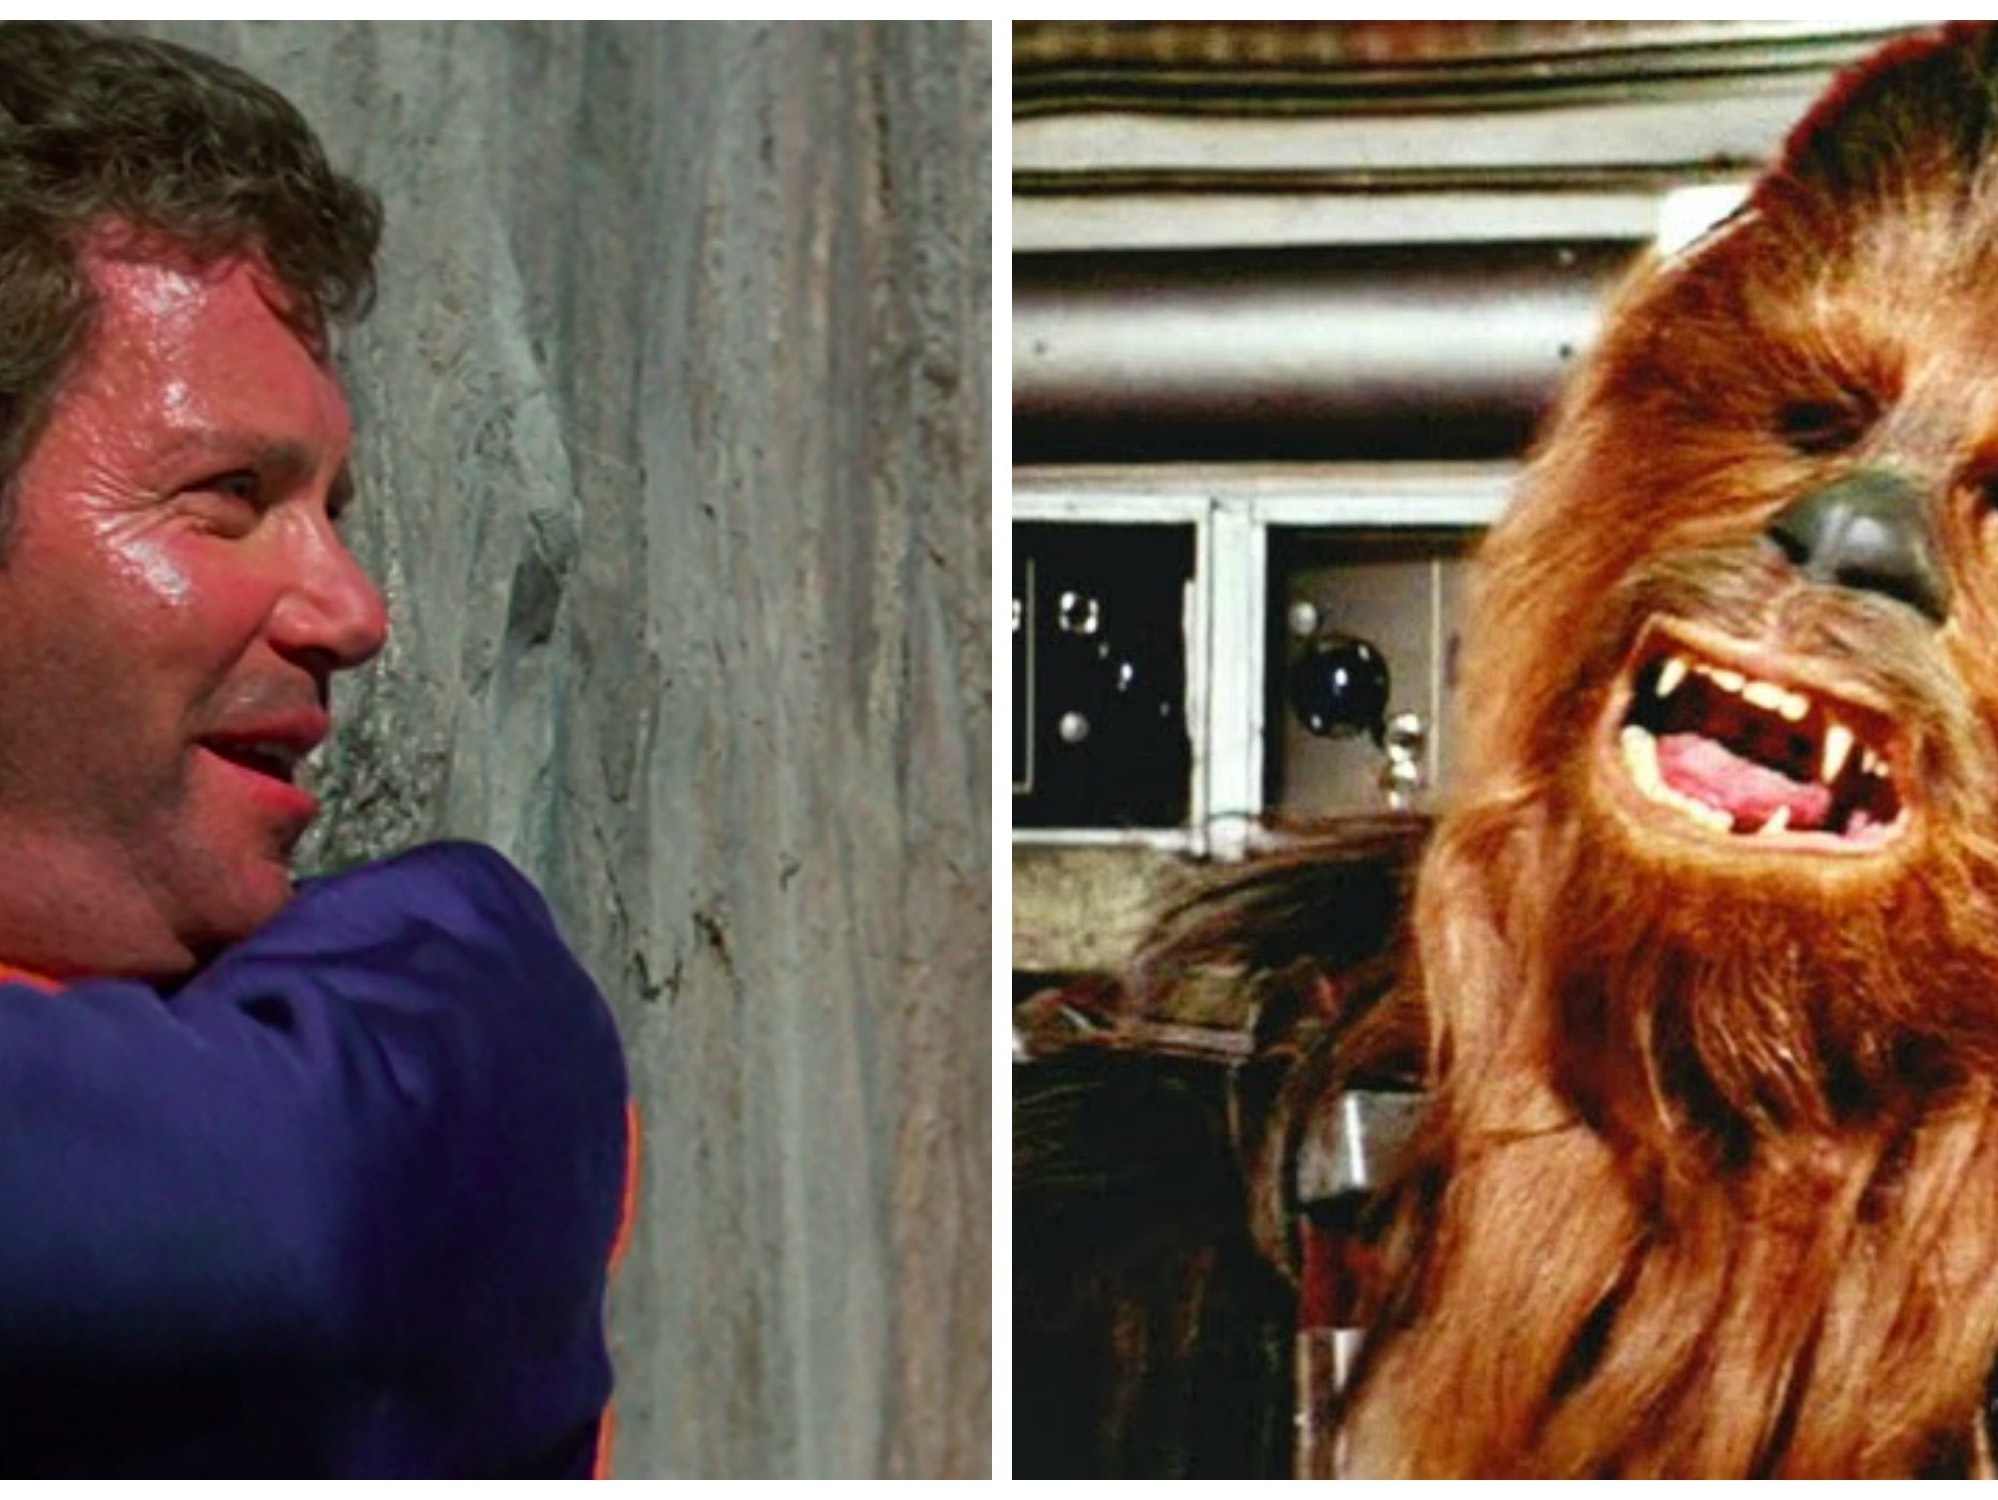 Chewbacca Slams Captain Kirk Over Lameness of 'Star Trek V'